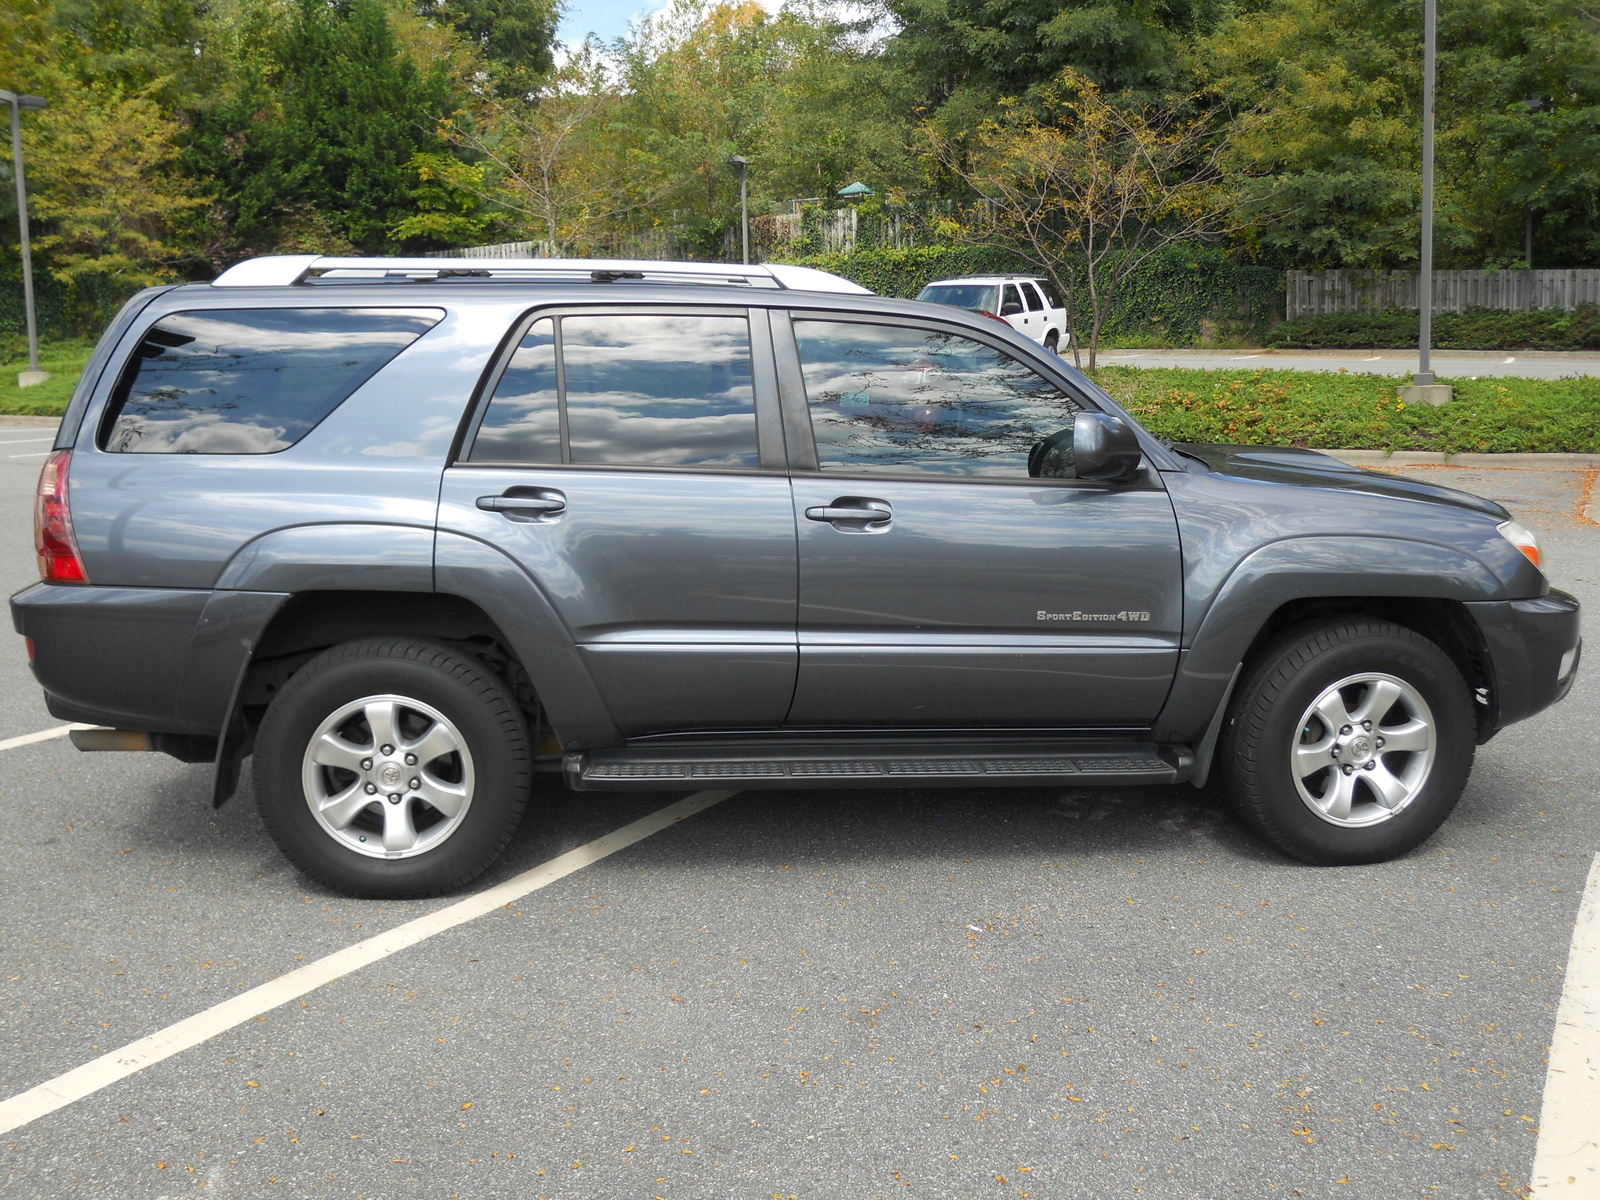 Picture of 2005 toyota 4runner sport edition v8 4wd exterior